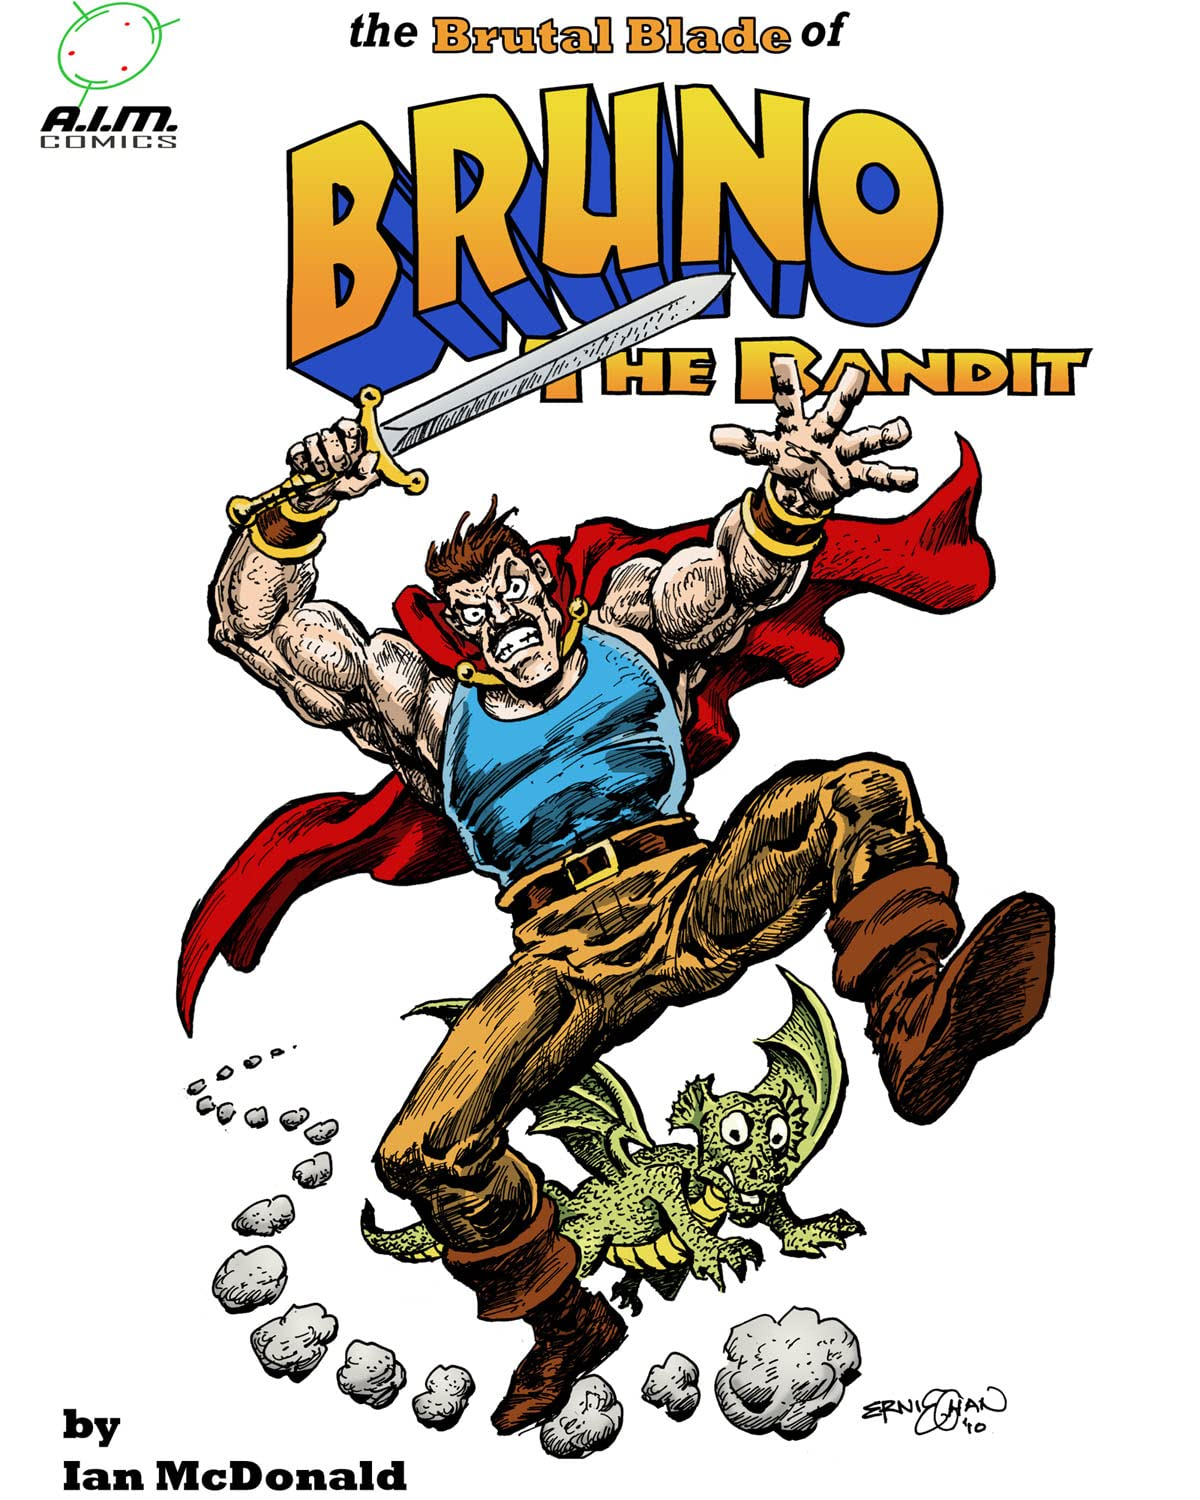 The Brutal Blade of Bruno the Bandit Vol. 1